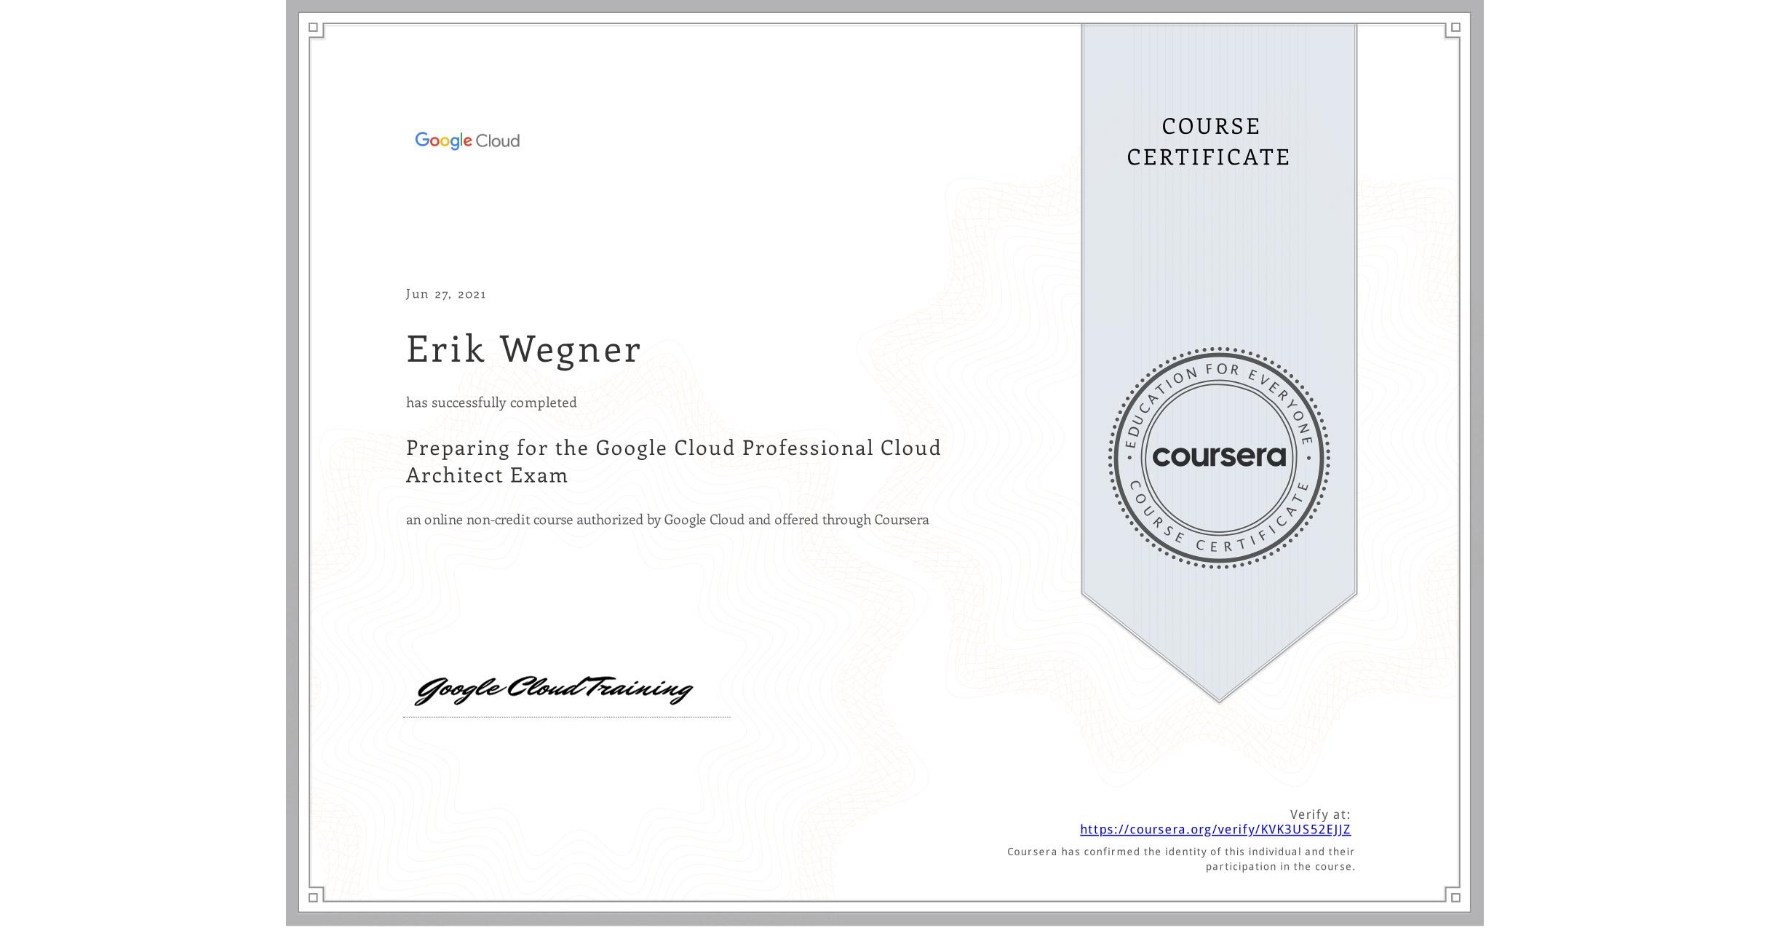 View certificate for Erik Wegner, Preparing for the Google Cloud Professional Cloud Architect Exam, an online non-credit course authorized by Google Cloud and offered through Coursera